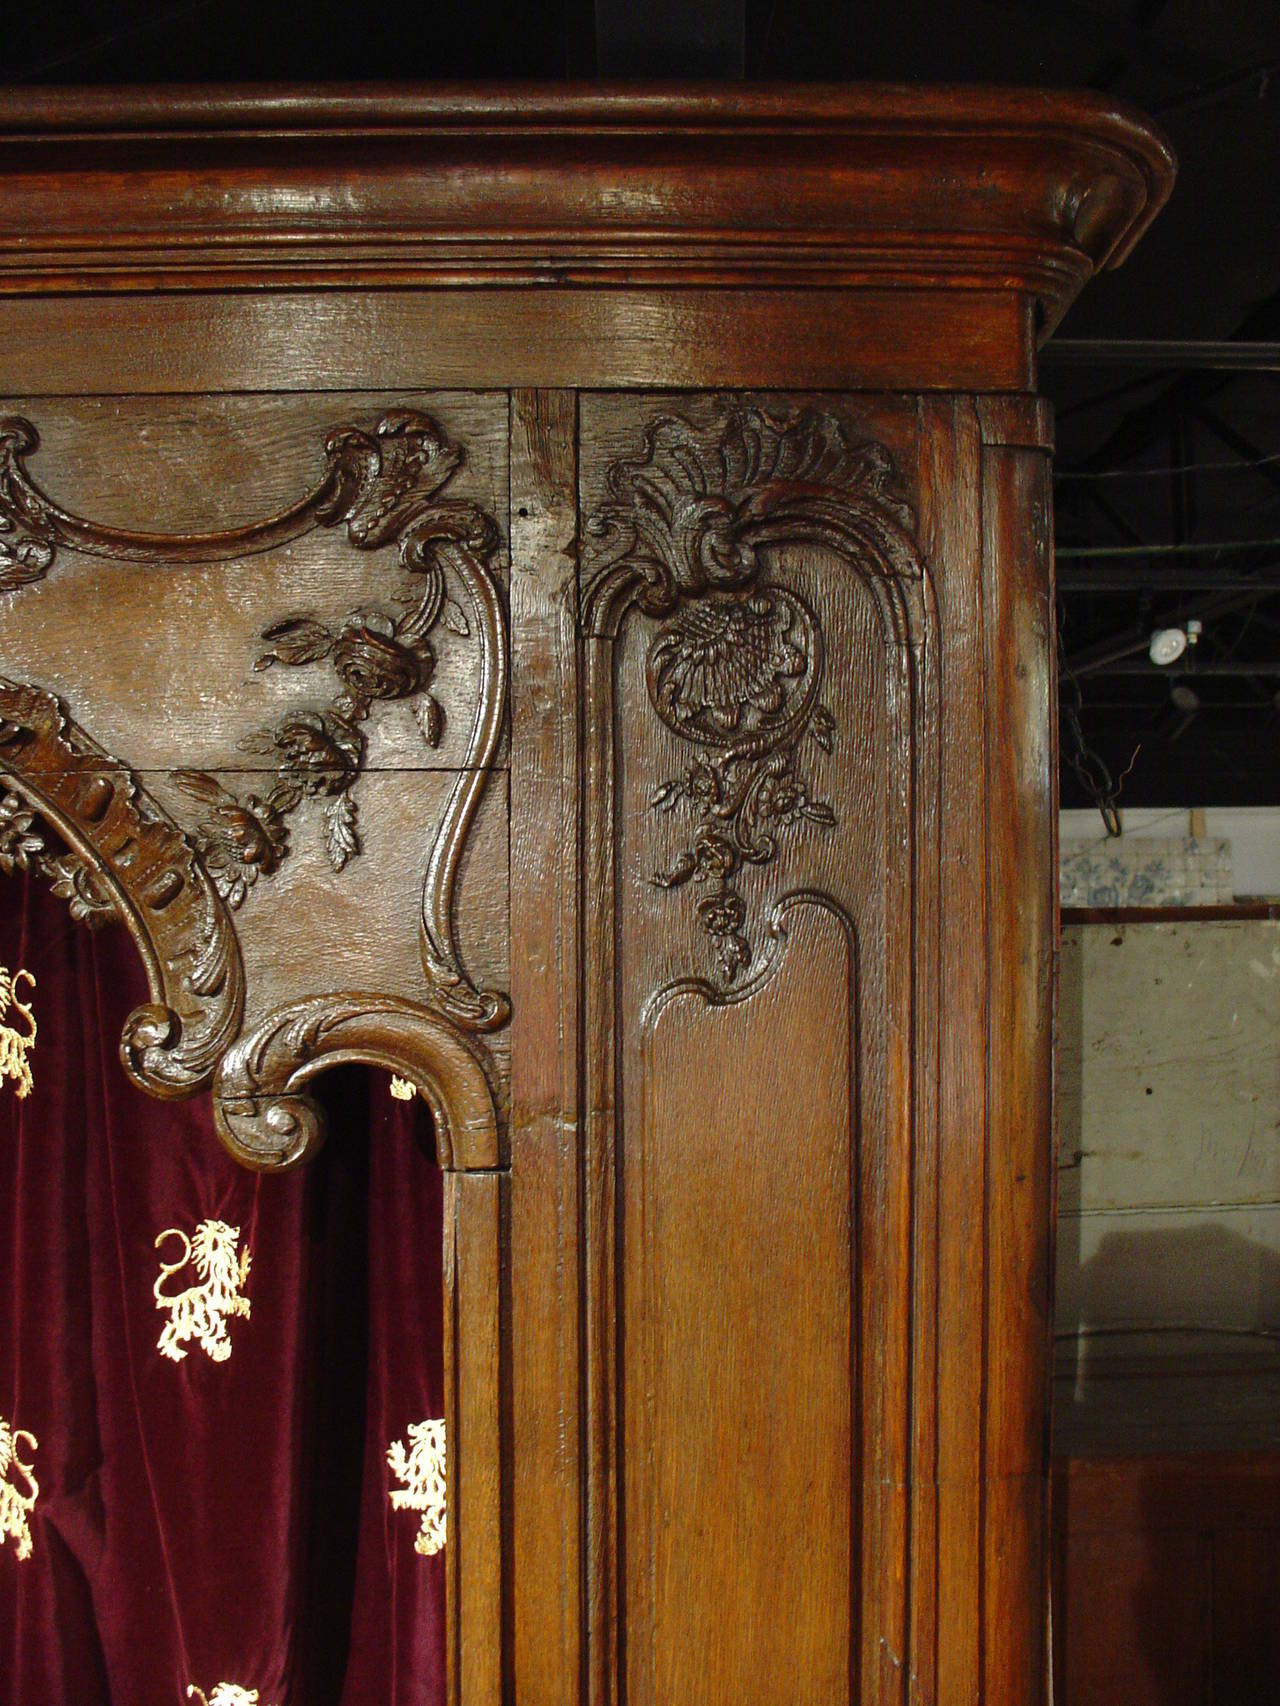 Regency Antique French Boiserie Door Surround from the 1700s For Sale